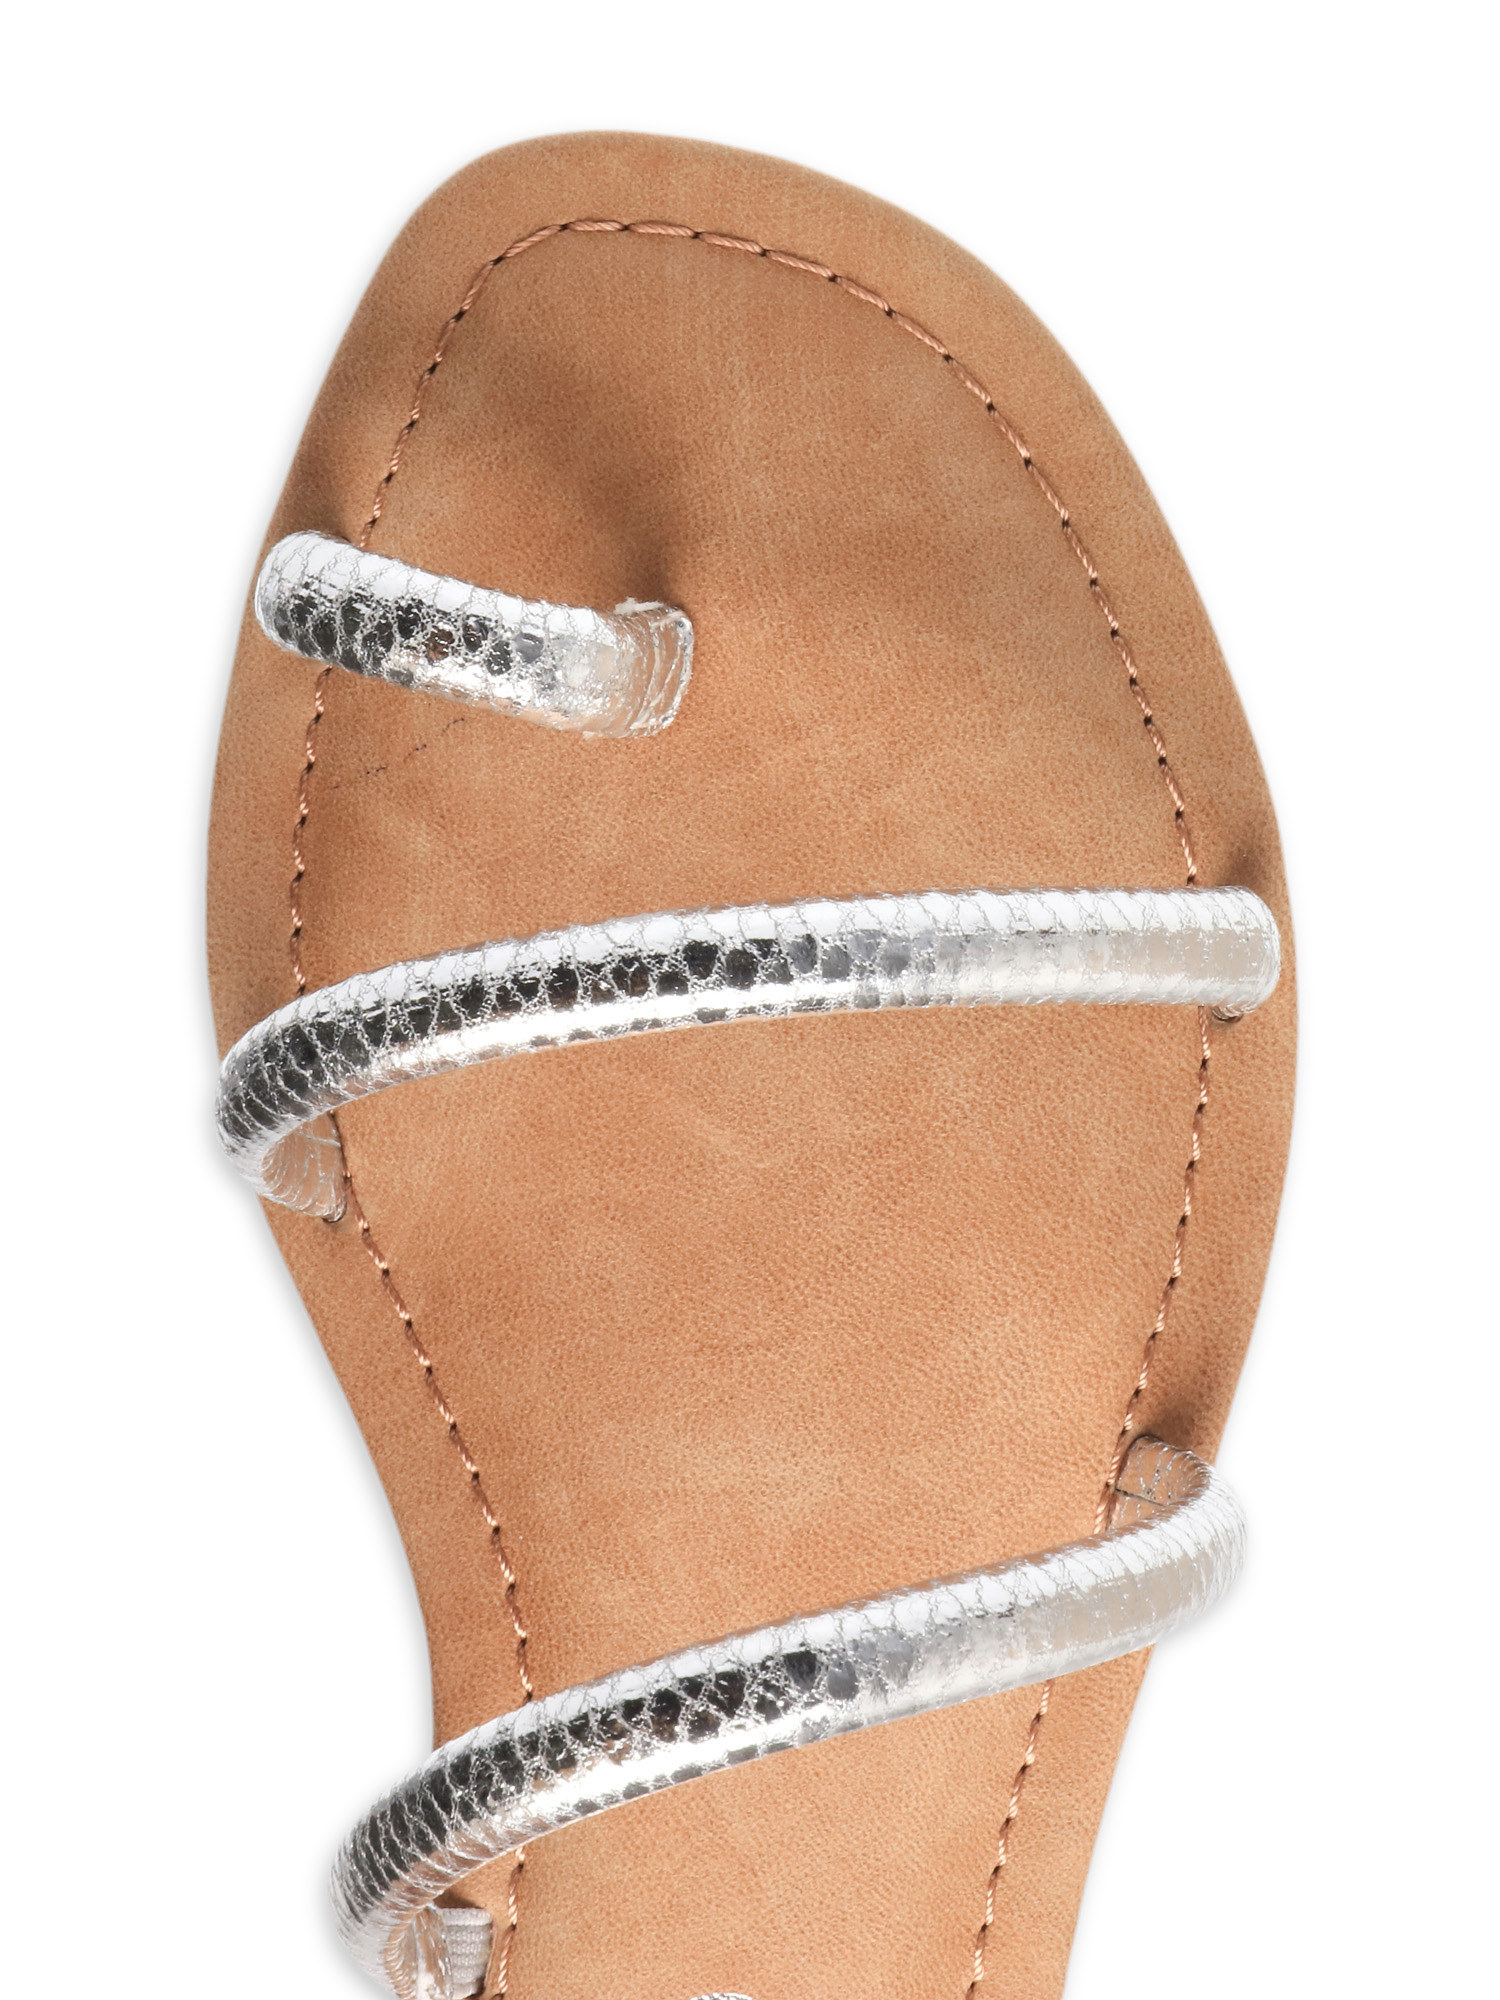 A top-down view of a silver strap sandal with light brown leather insole